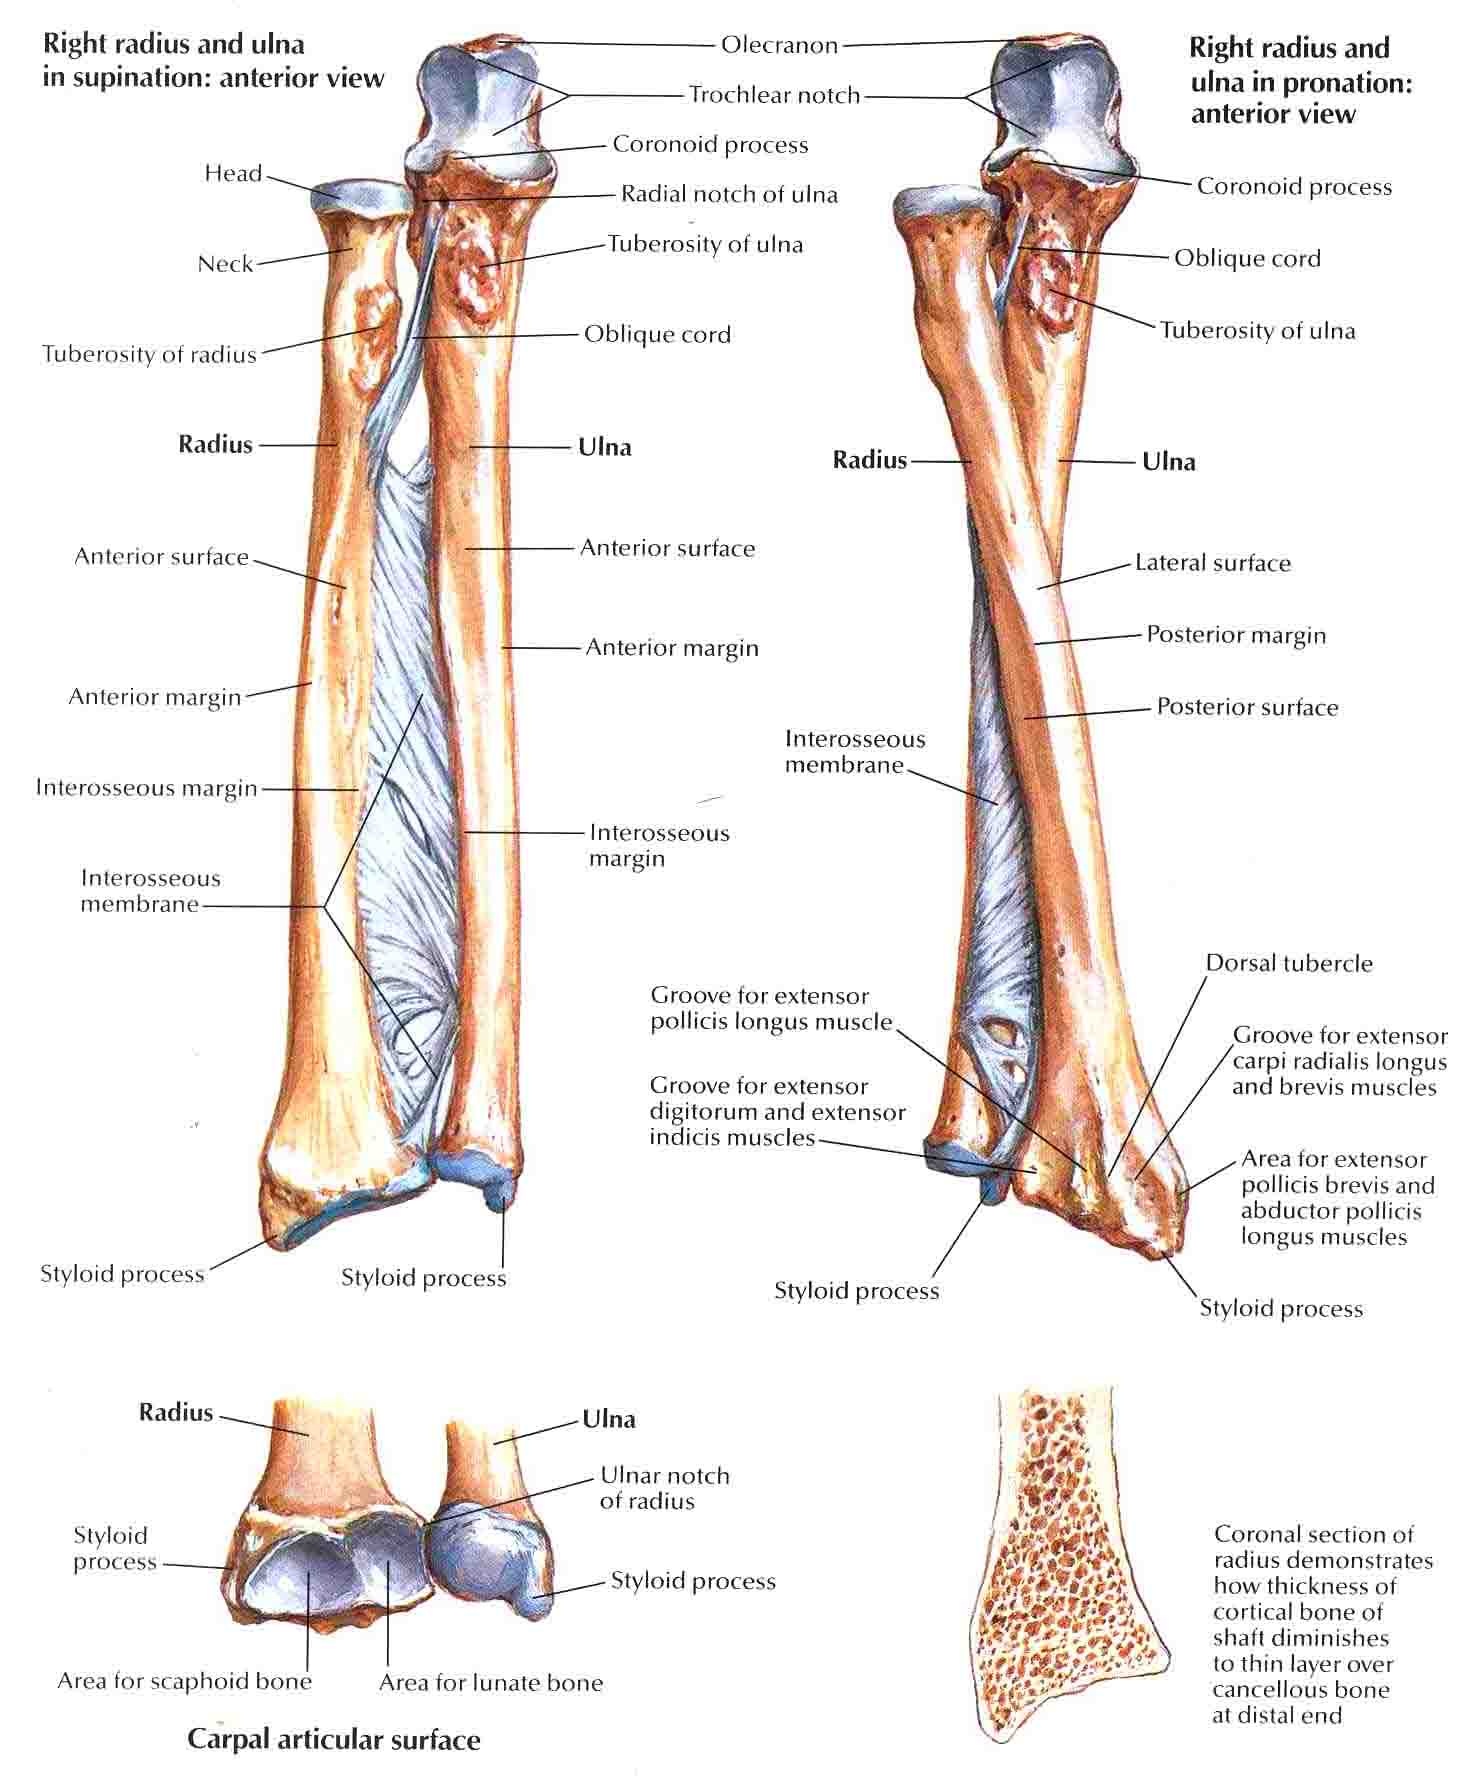 bones-of-forearm.jpg (1484×1780) | SDP Anatomy | Pinterest | Arm bones